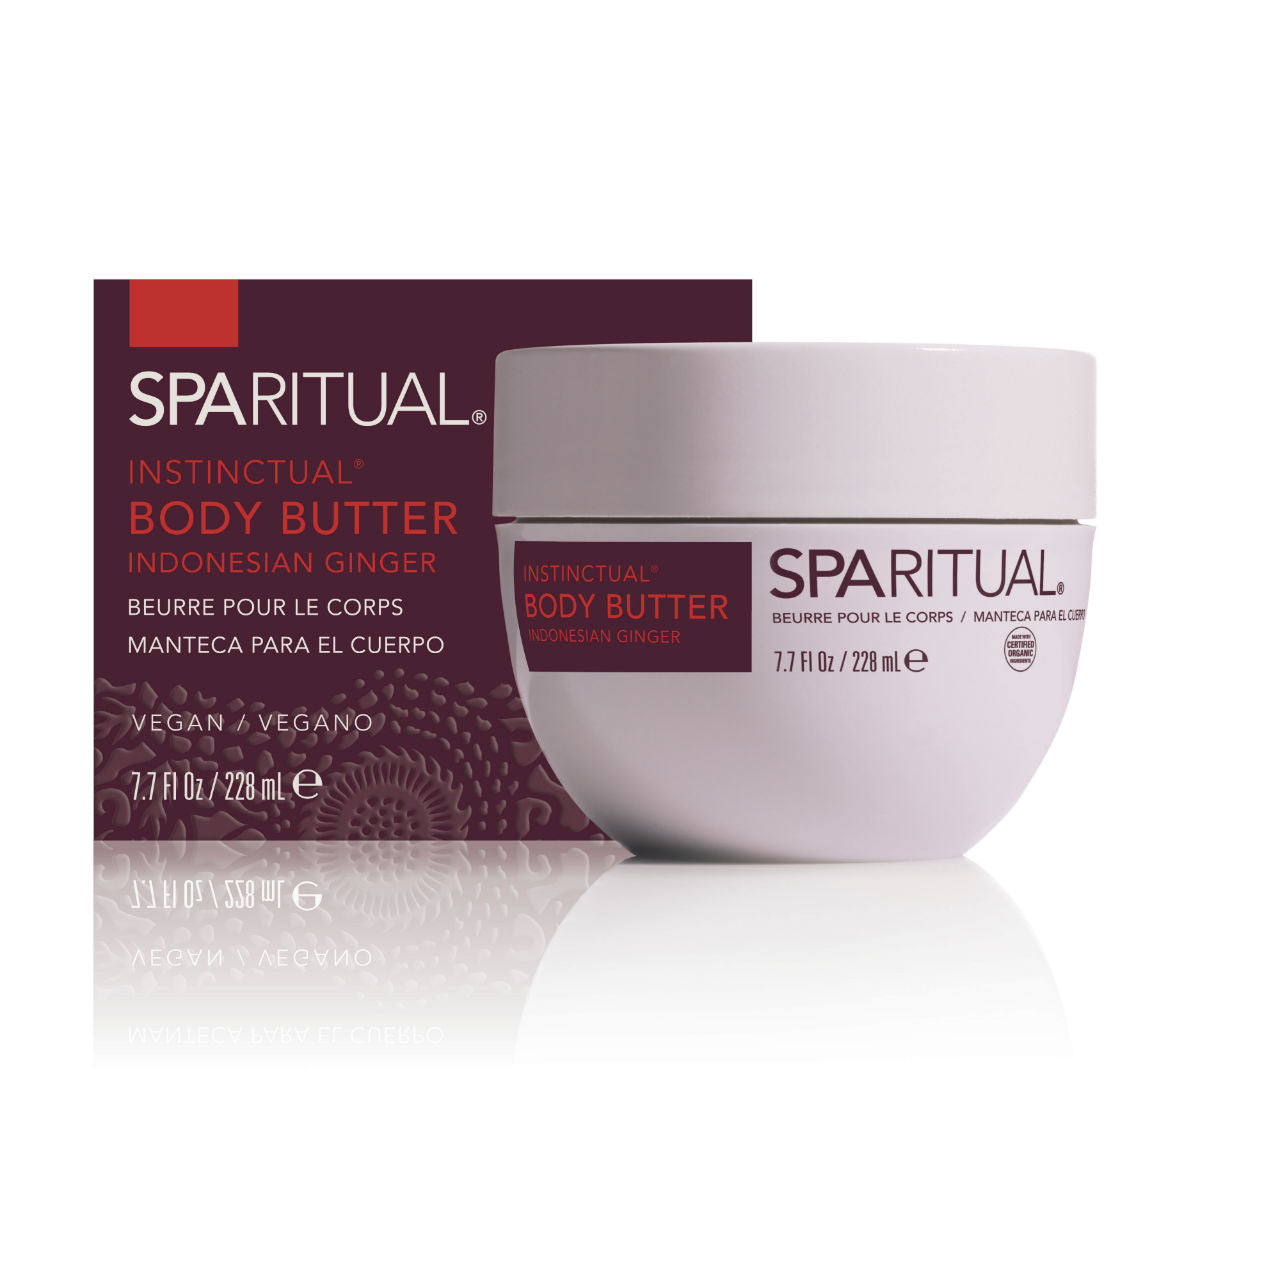 SPARITUAL Instinctual Body Butter Box